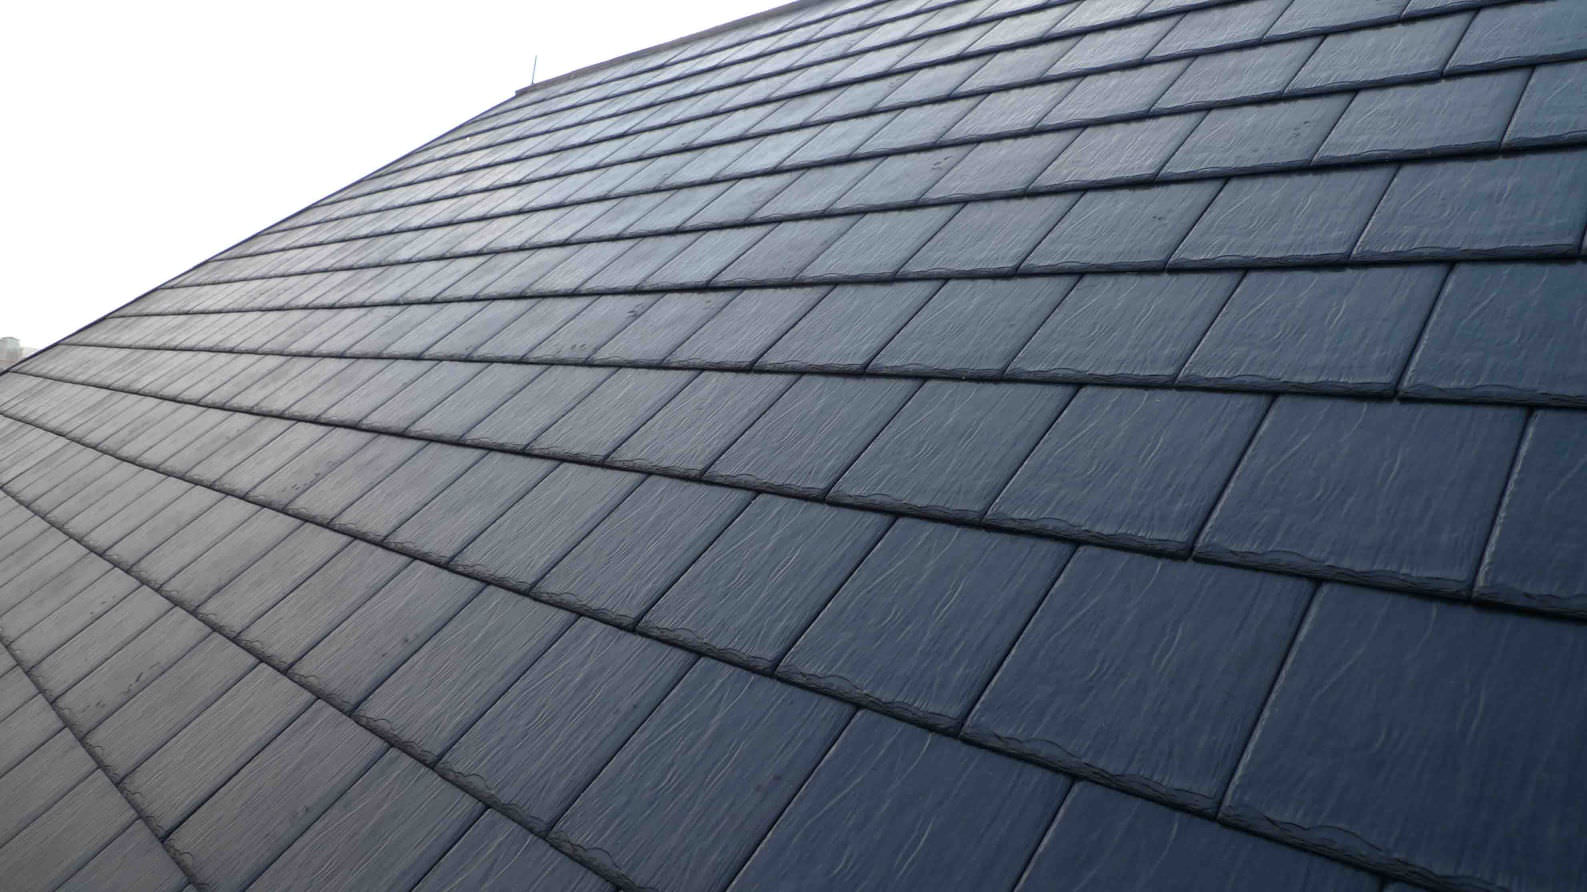 Slate Roofs What Should I Know